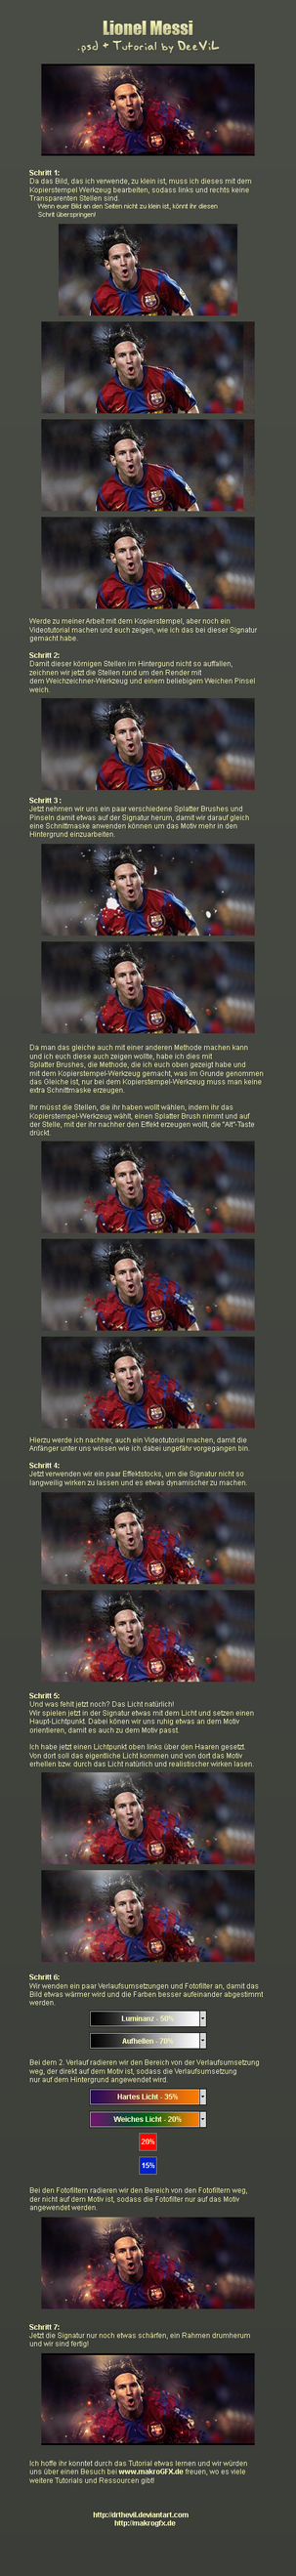 Lionel Messi - Sig. Tutorial by DrTheviL